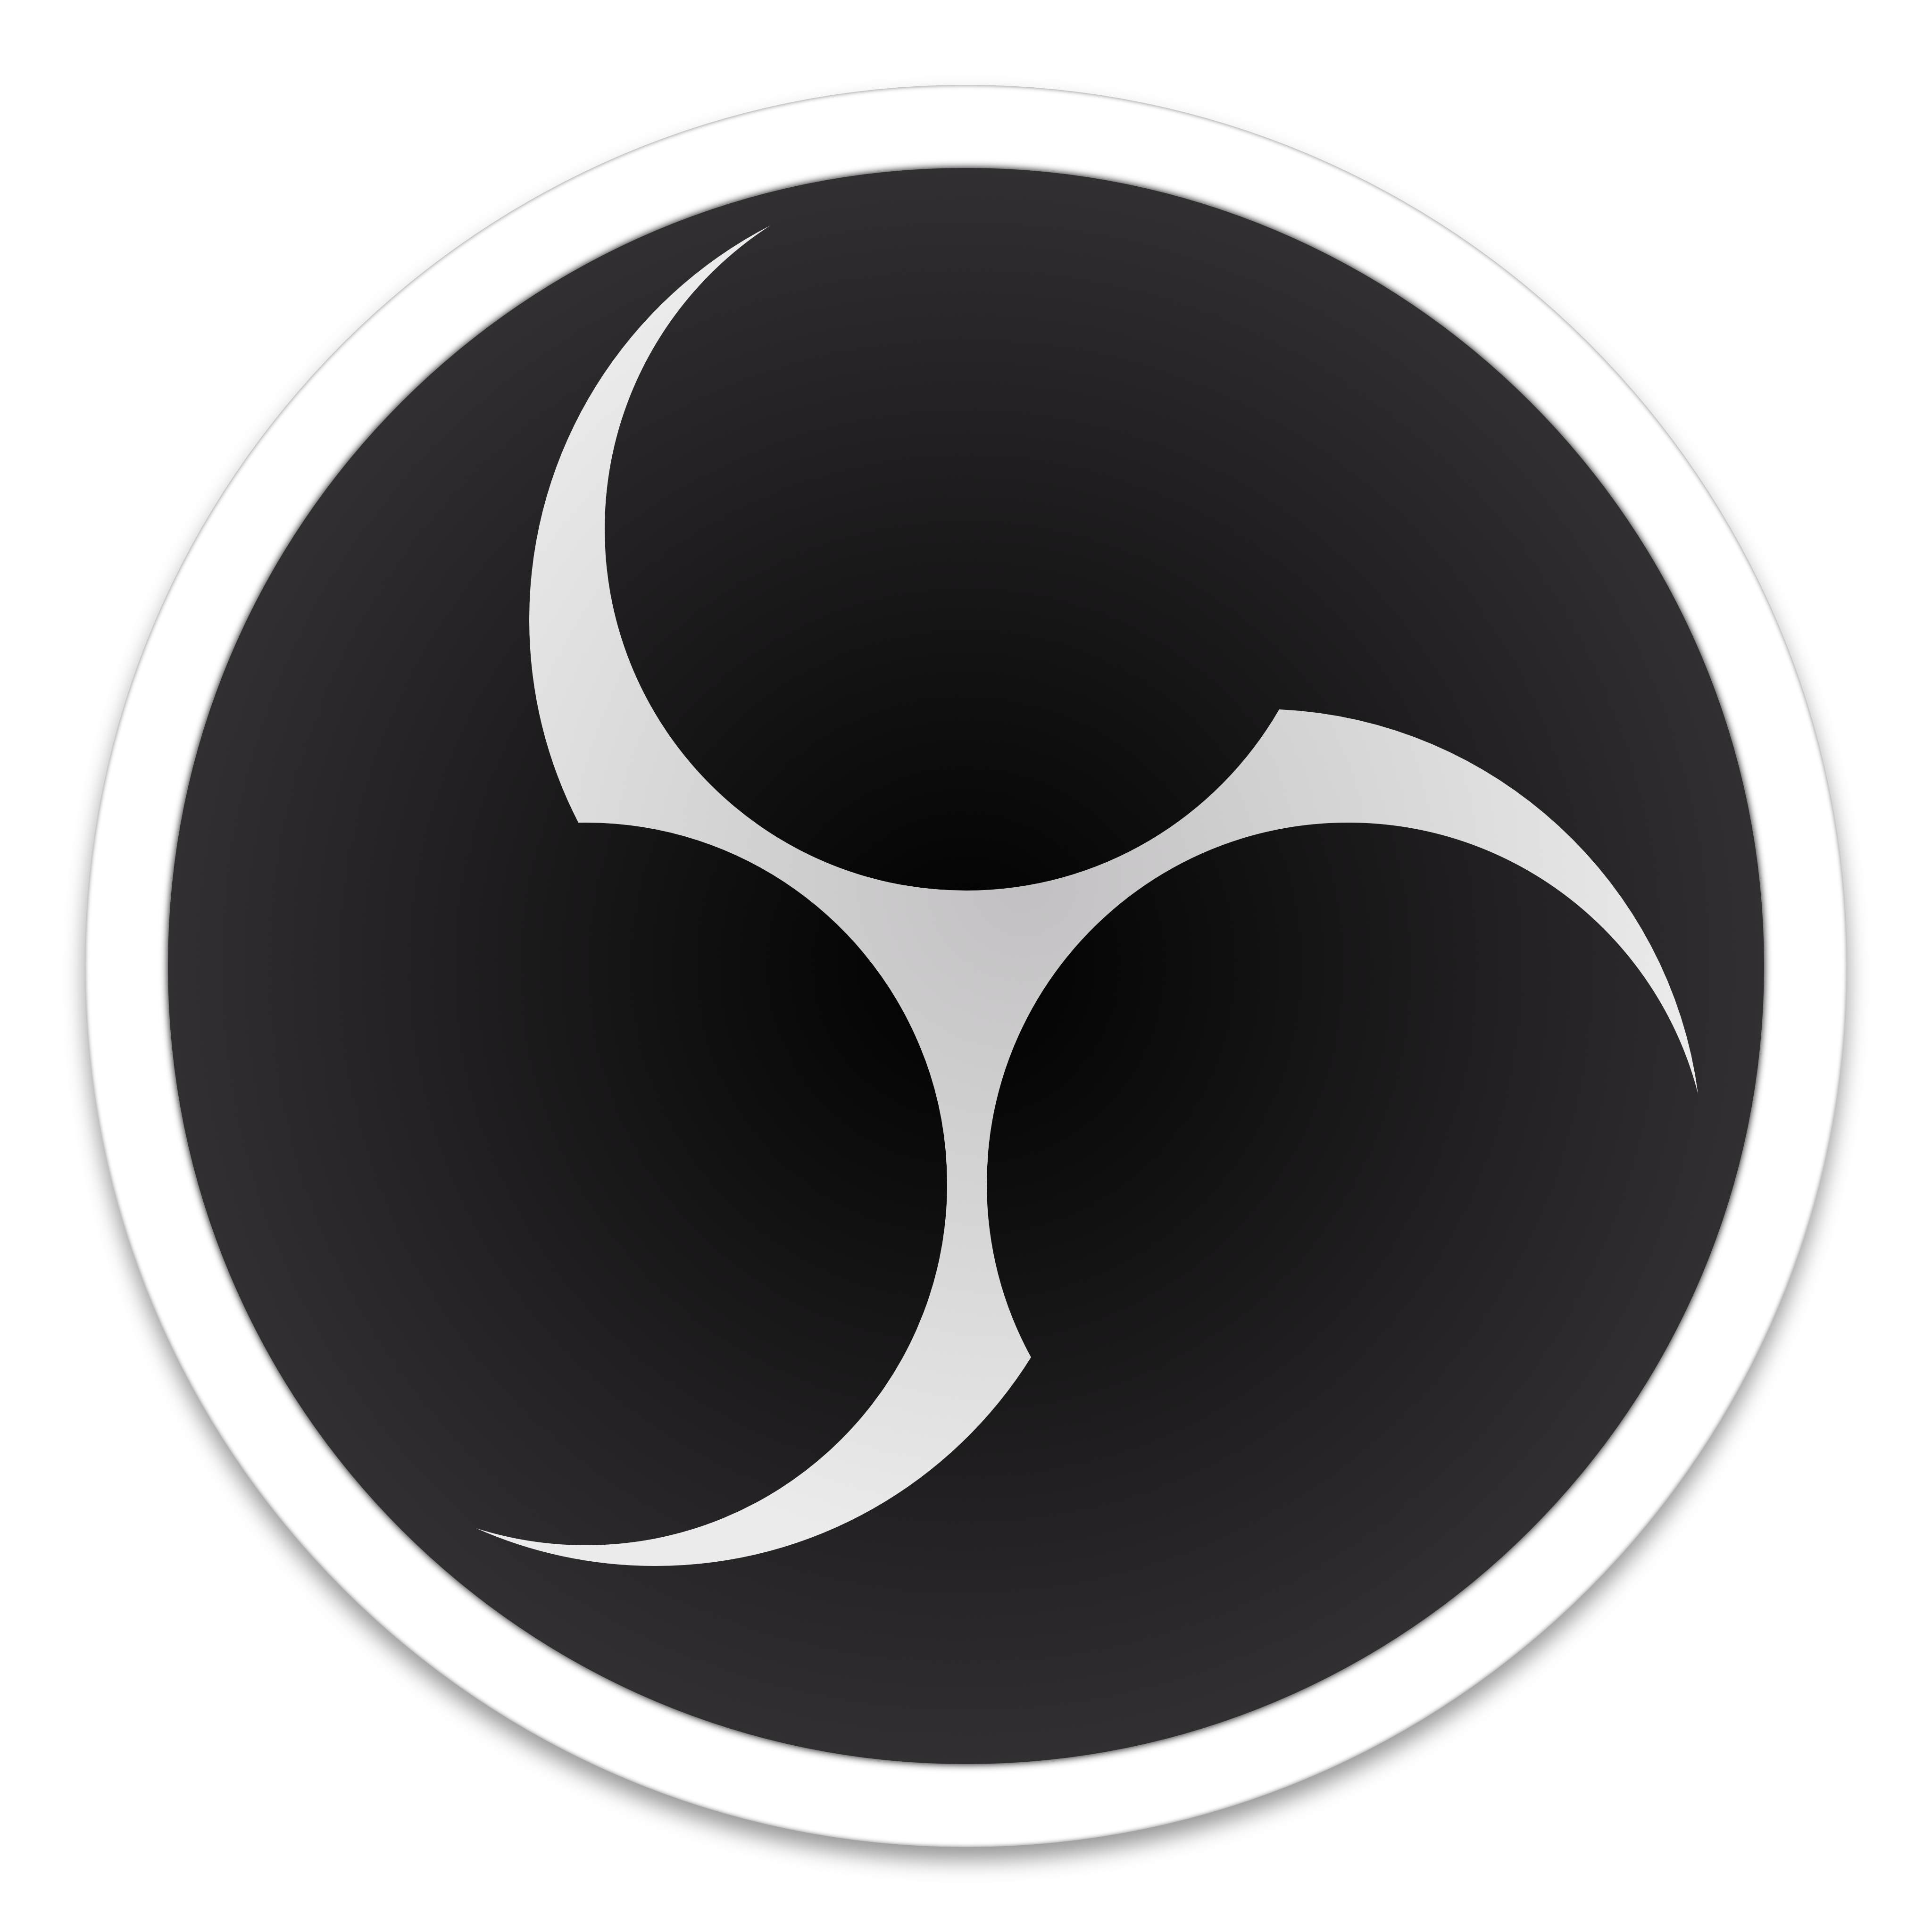 File:Open Broadcaster Software Logo.png.